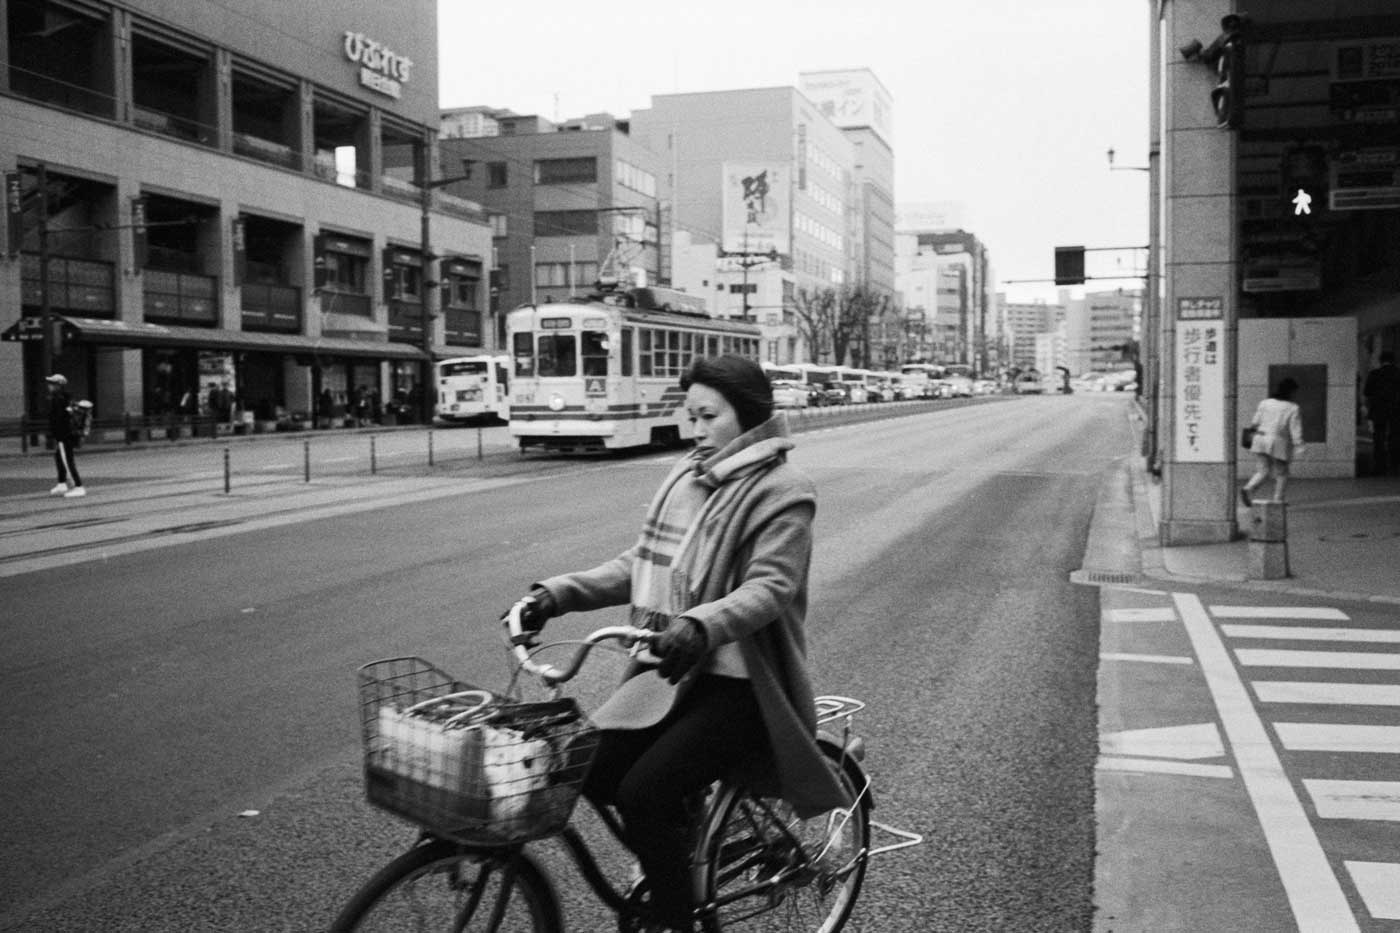 Leica-summicron-35mm-f2-8element-8-element-v1-version1-lens-review-blog-sharing-thoughts-compare-7element-gear-how-performance-kodak-eastman-5222-double-x-250-woman-cycling-in-fukuoka-japan-travel